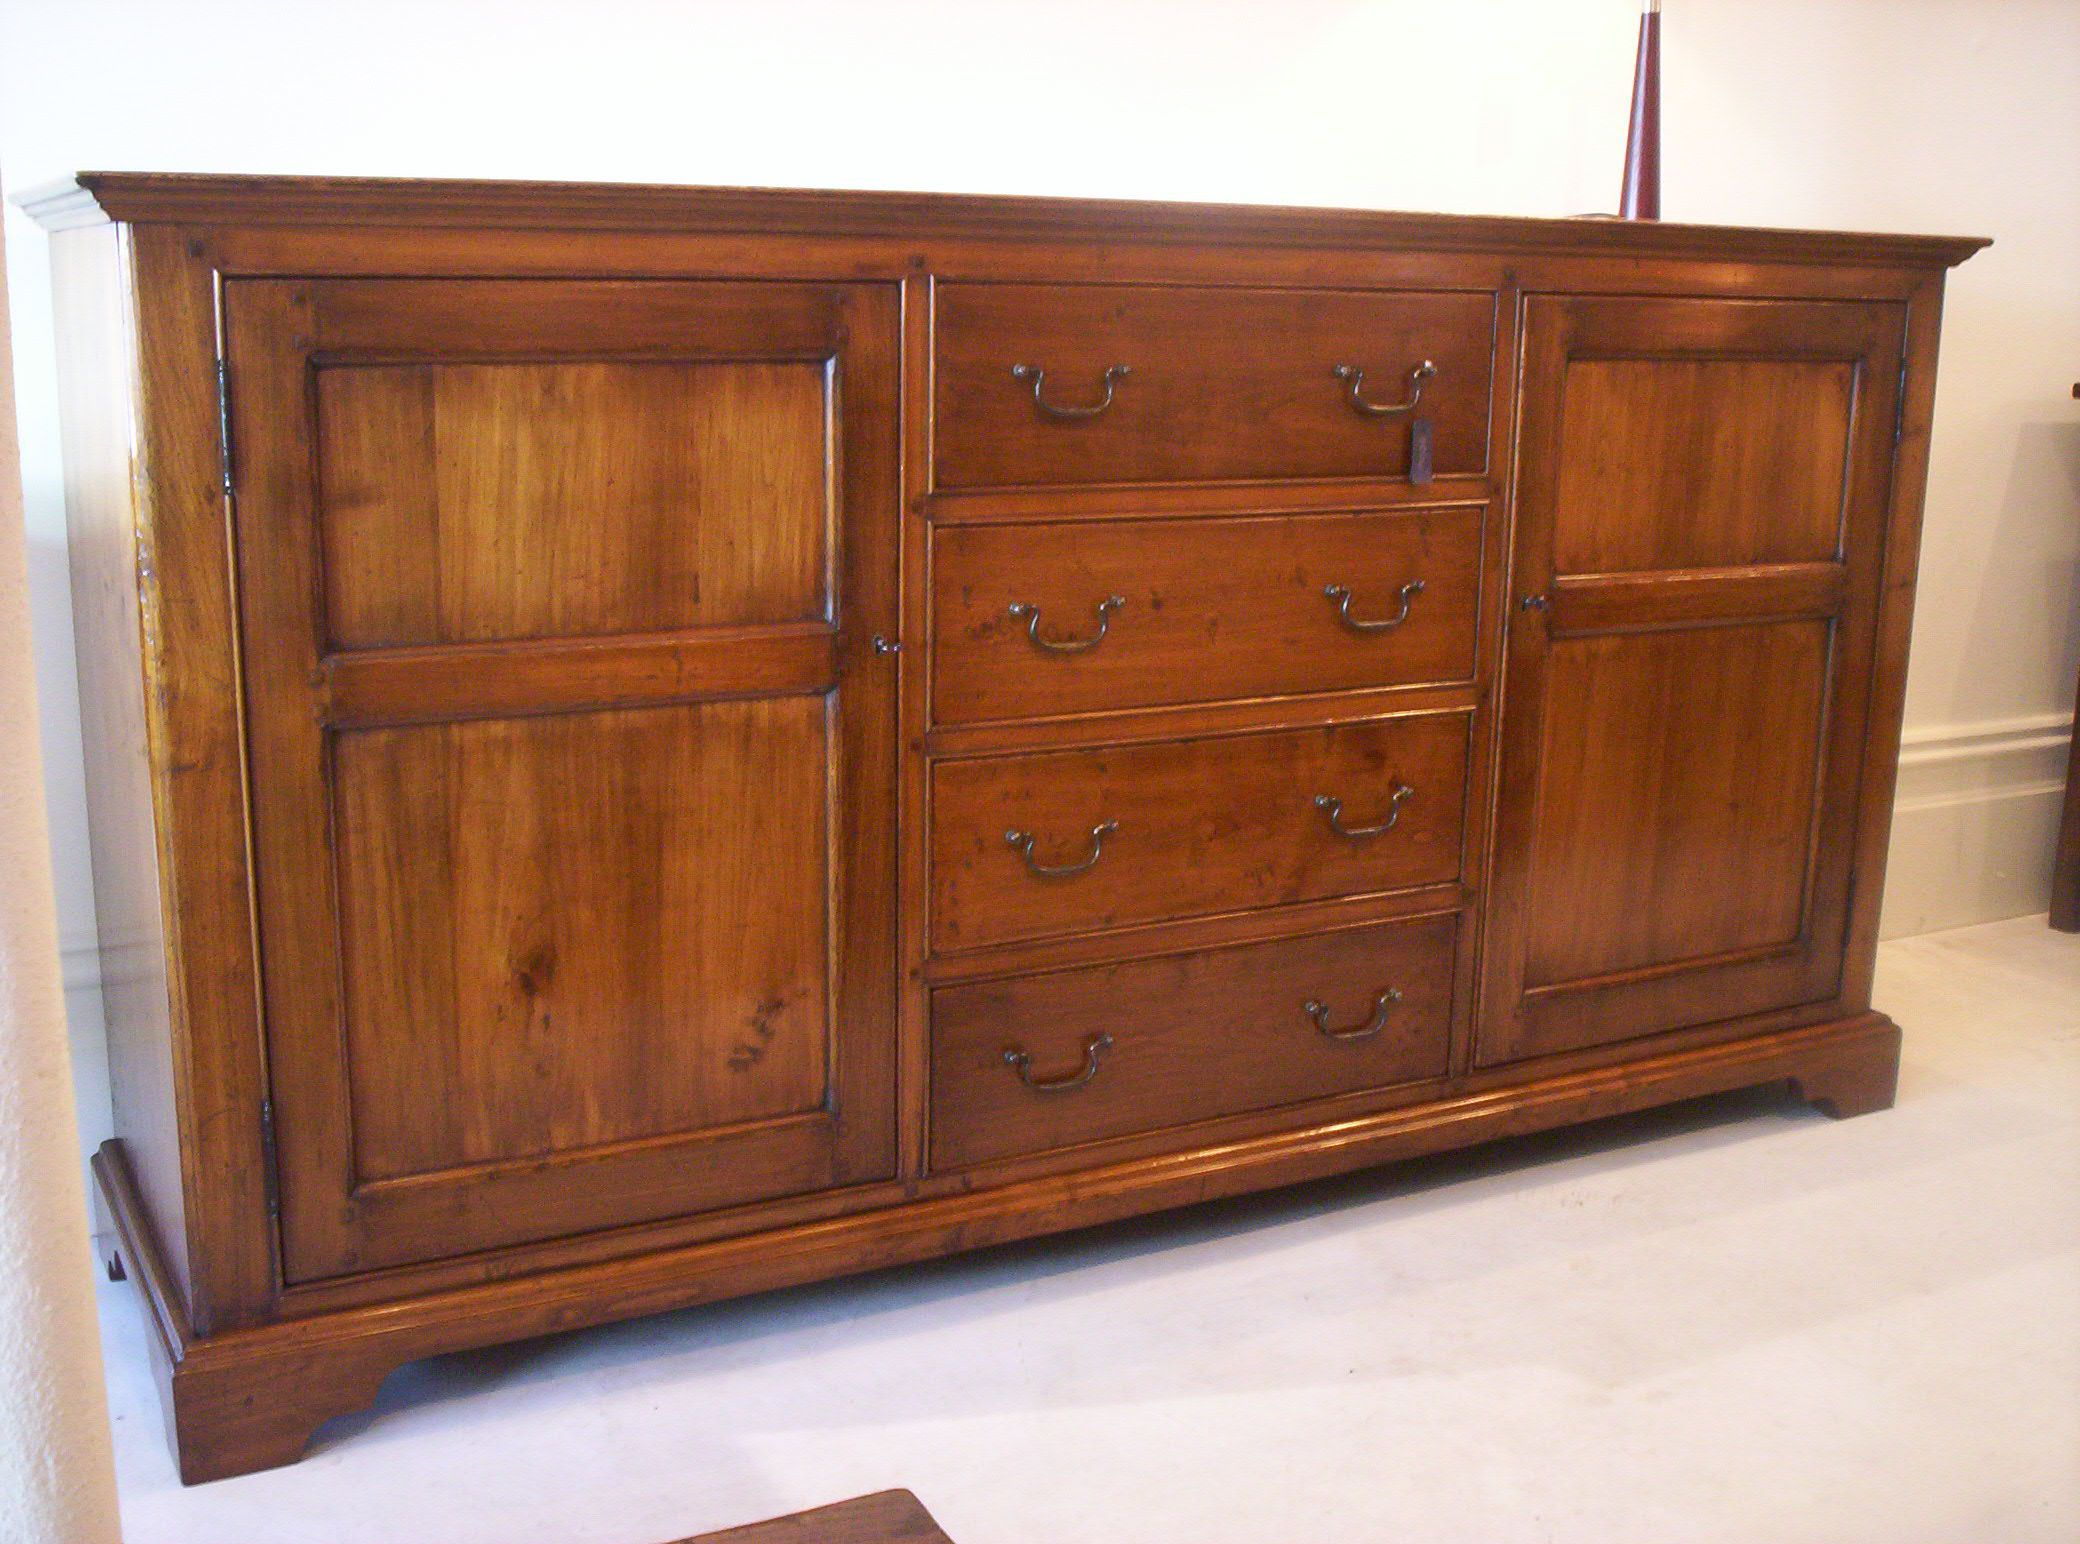 Mansfield Sideboard With Adjustable Internal Shelves Cherry Wood